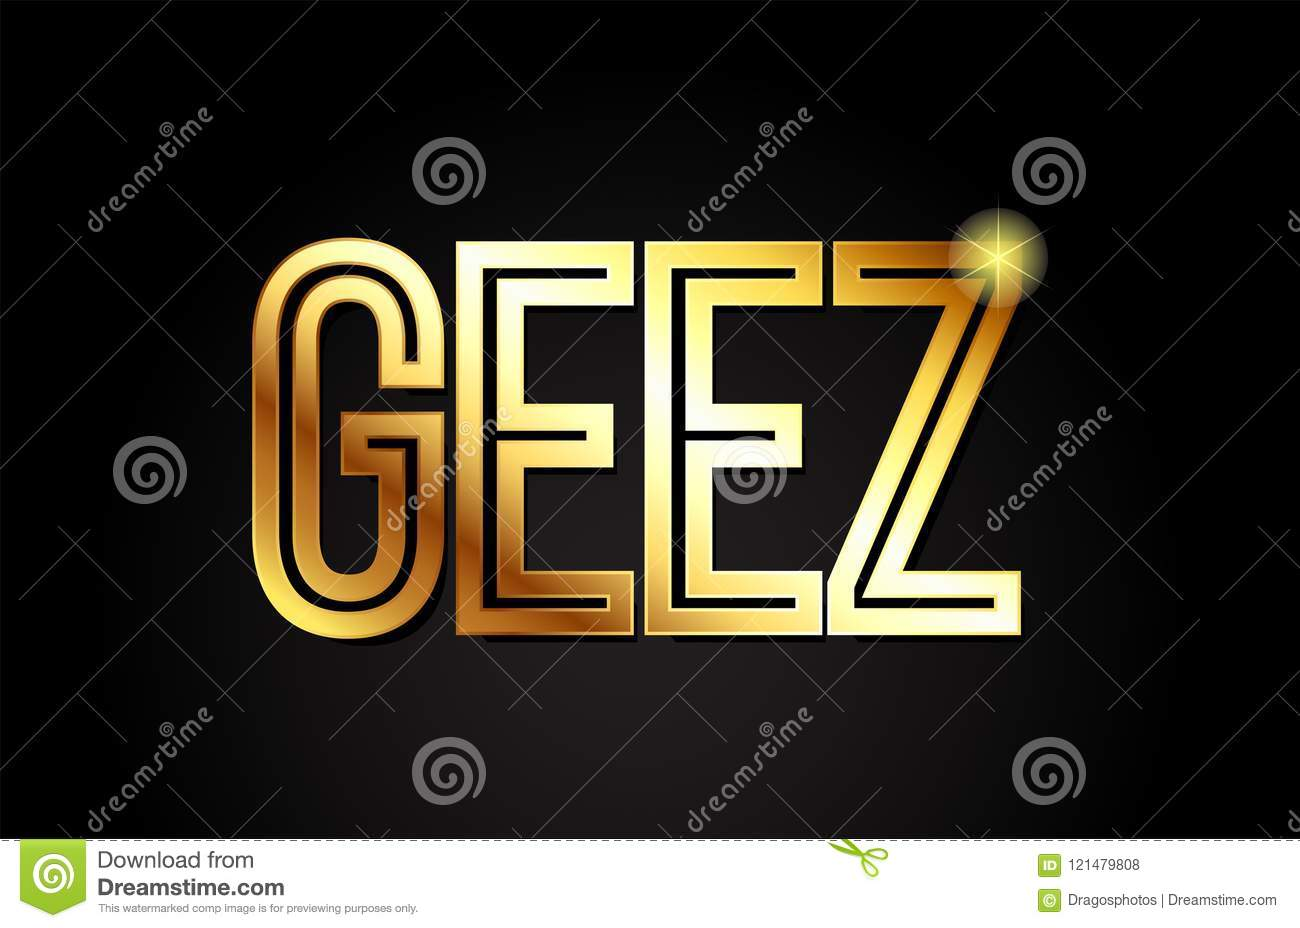 Geez word free download for iphone.